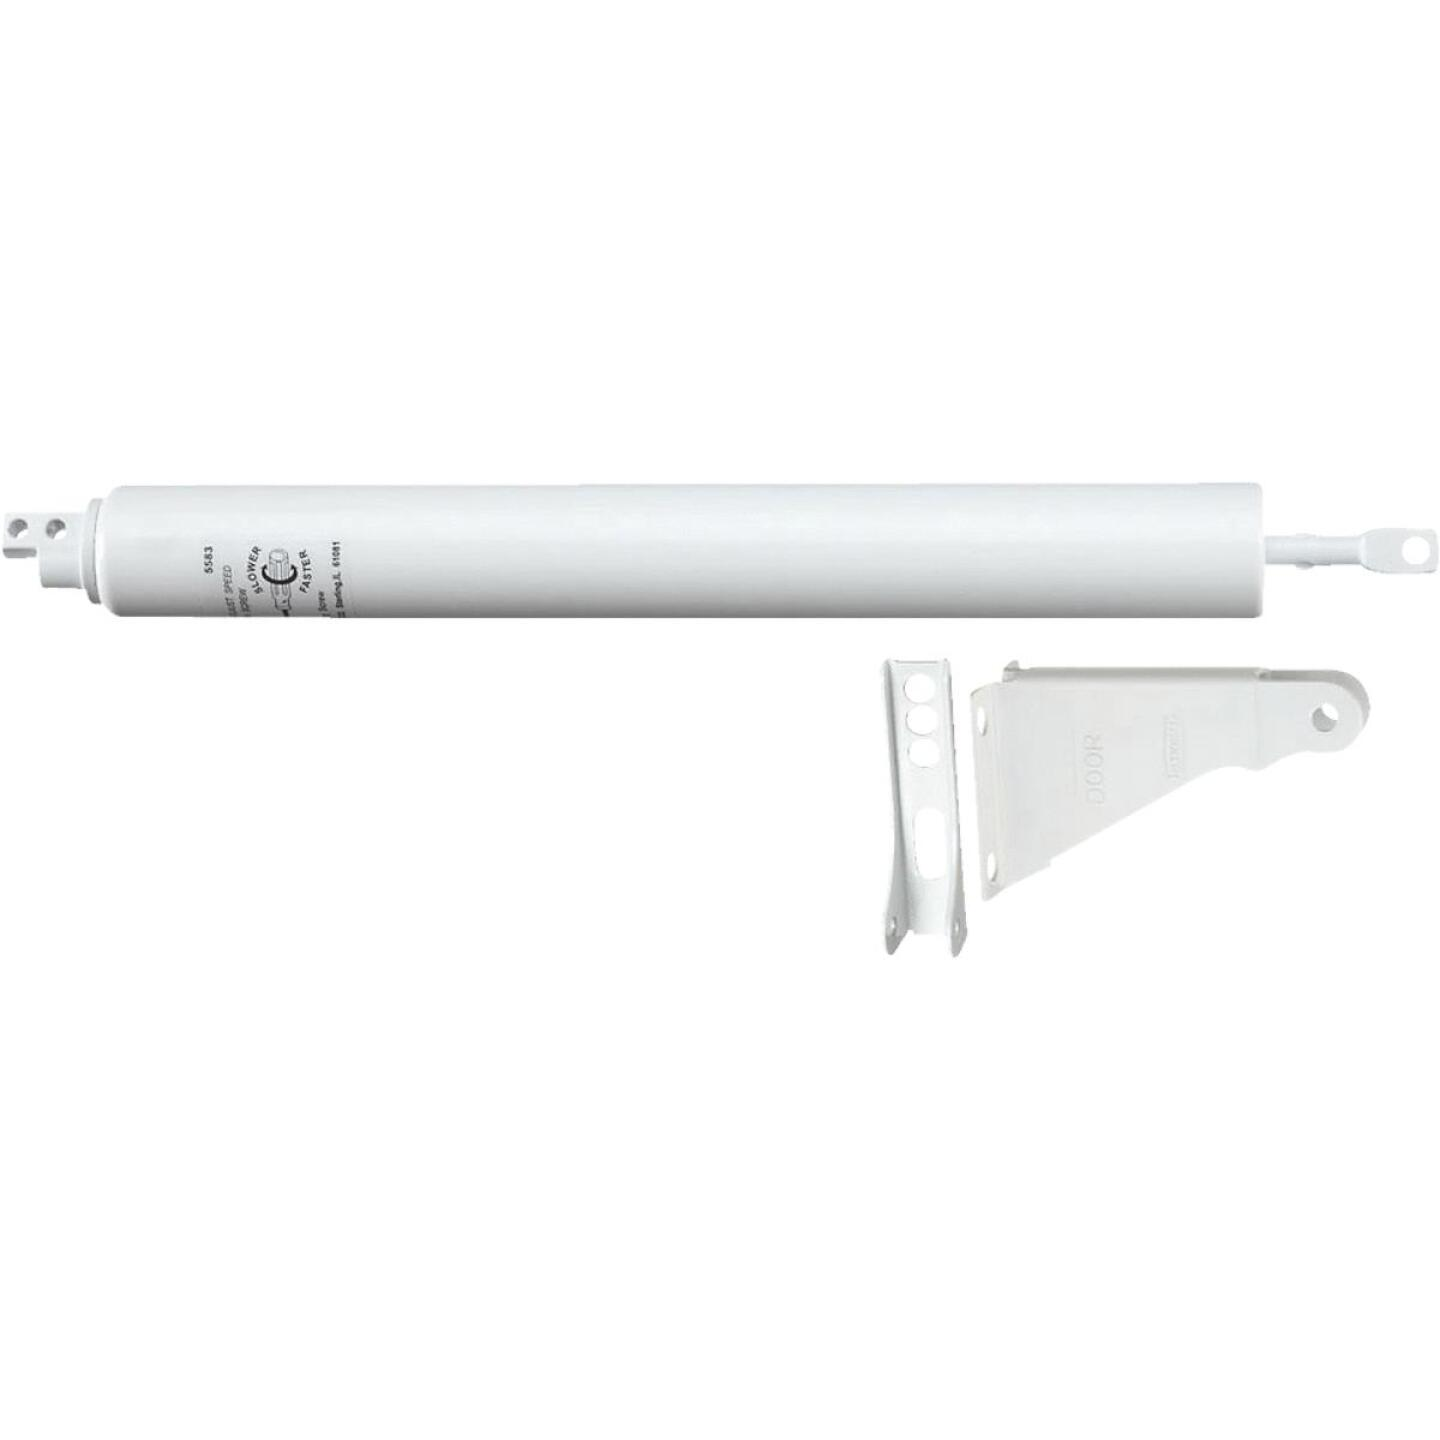 National White Storm or Screen Door Closer Image 1